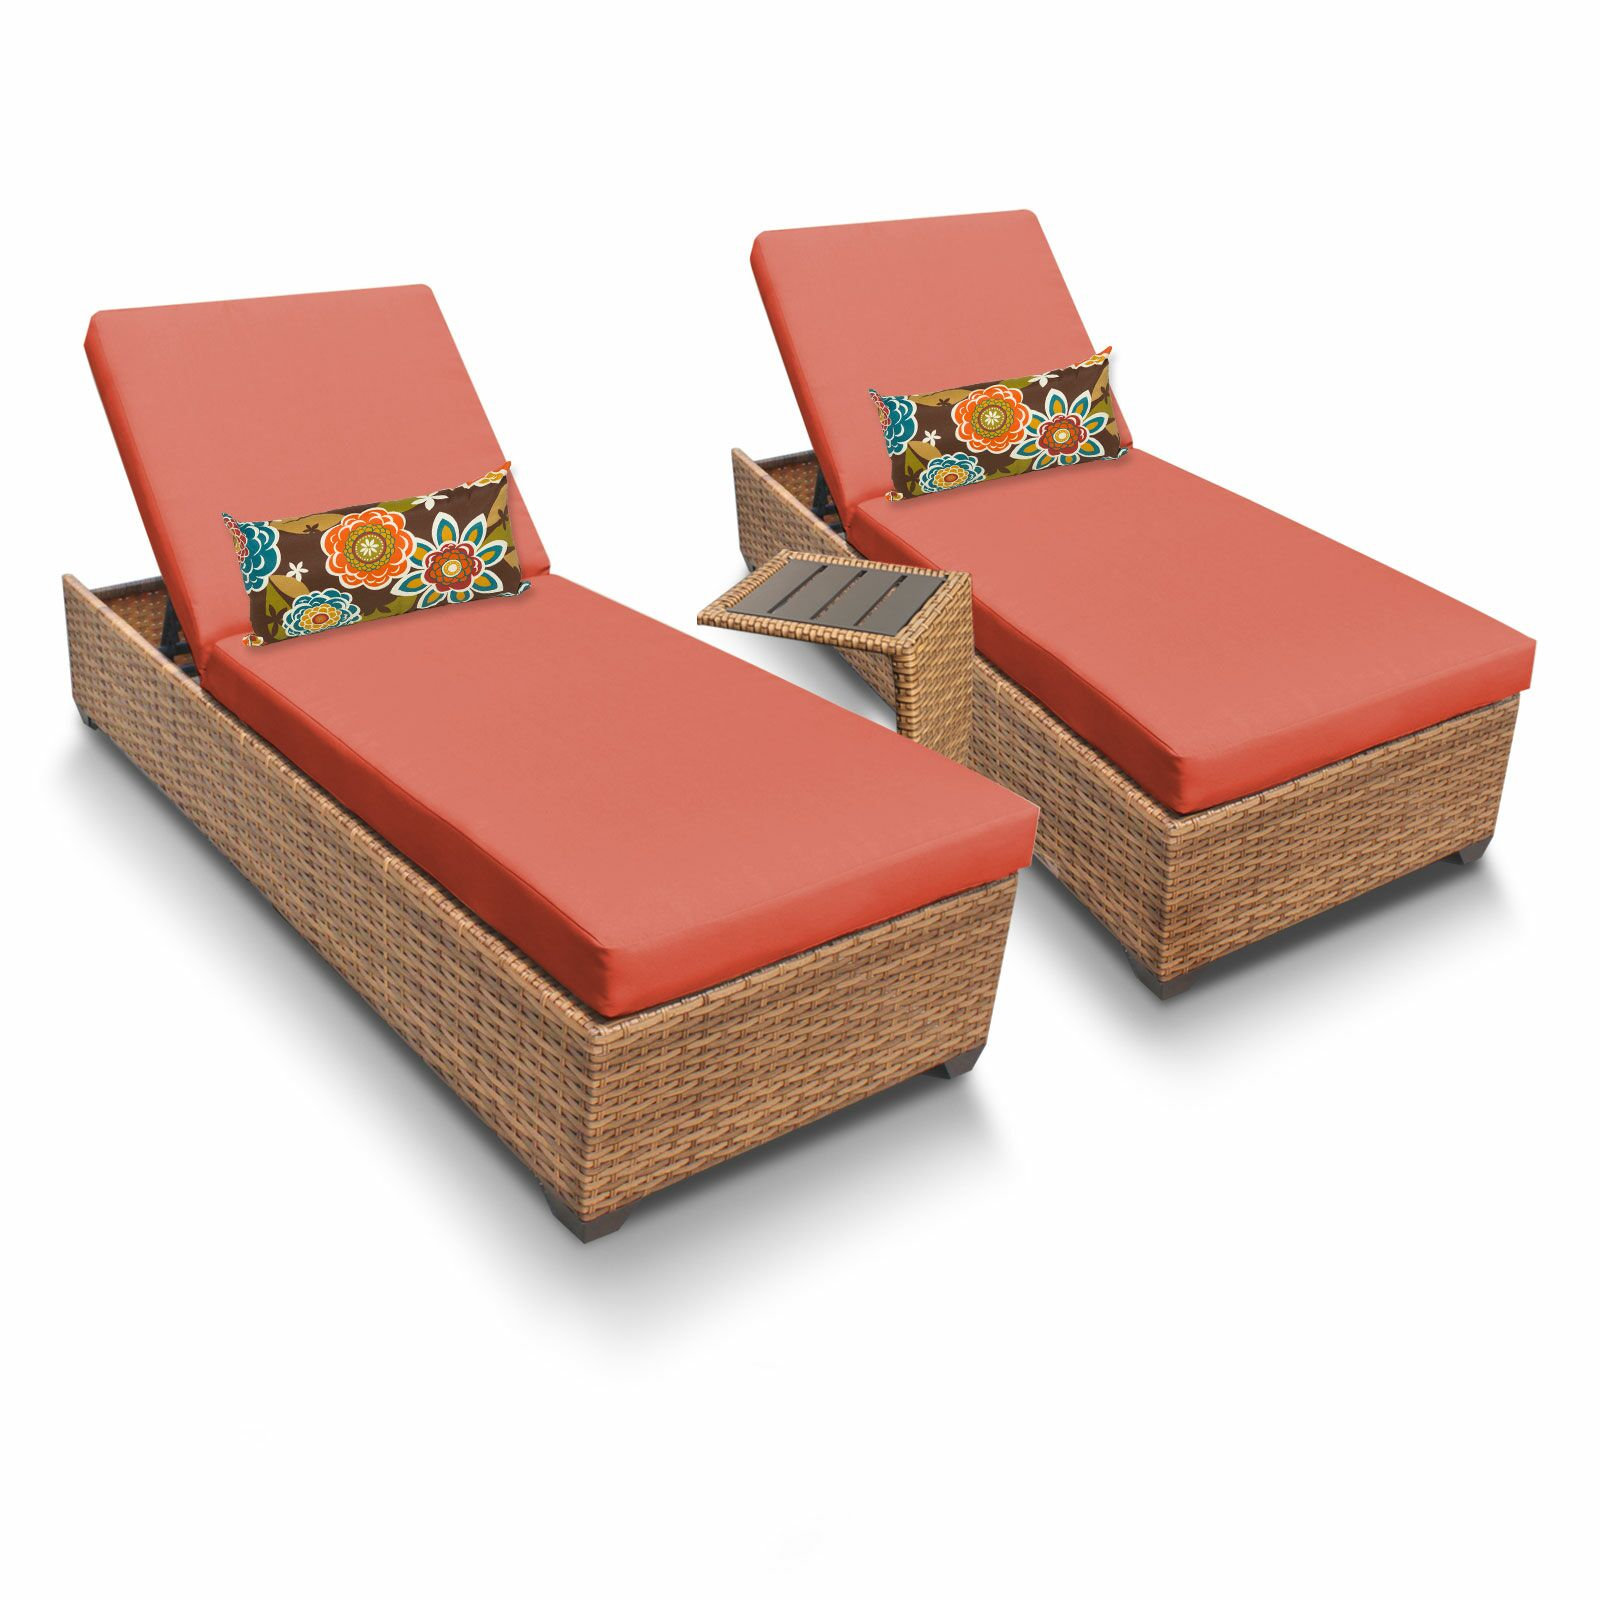 Asellus 3 Piece Chaise Lounge Set with Cushion Color: Tangerine